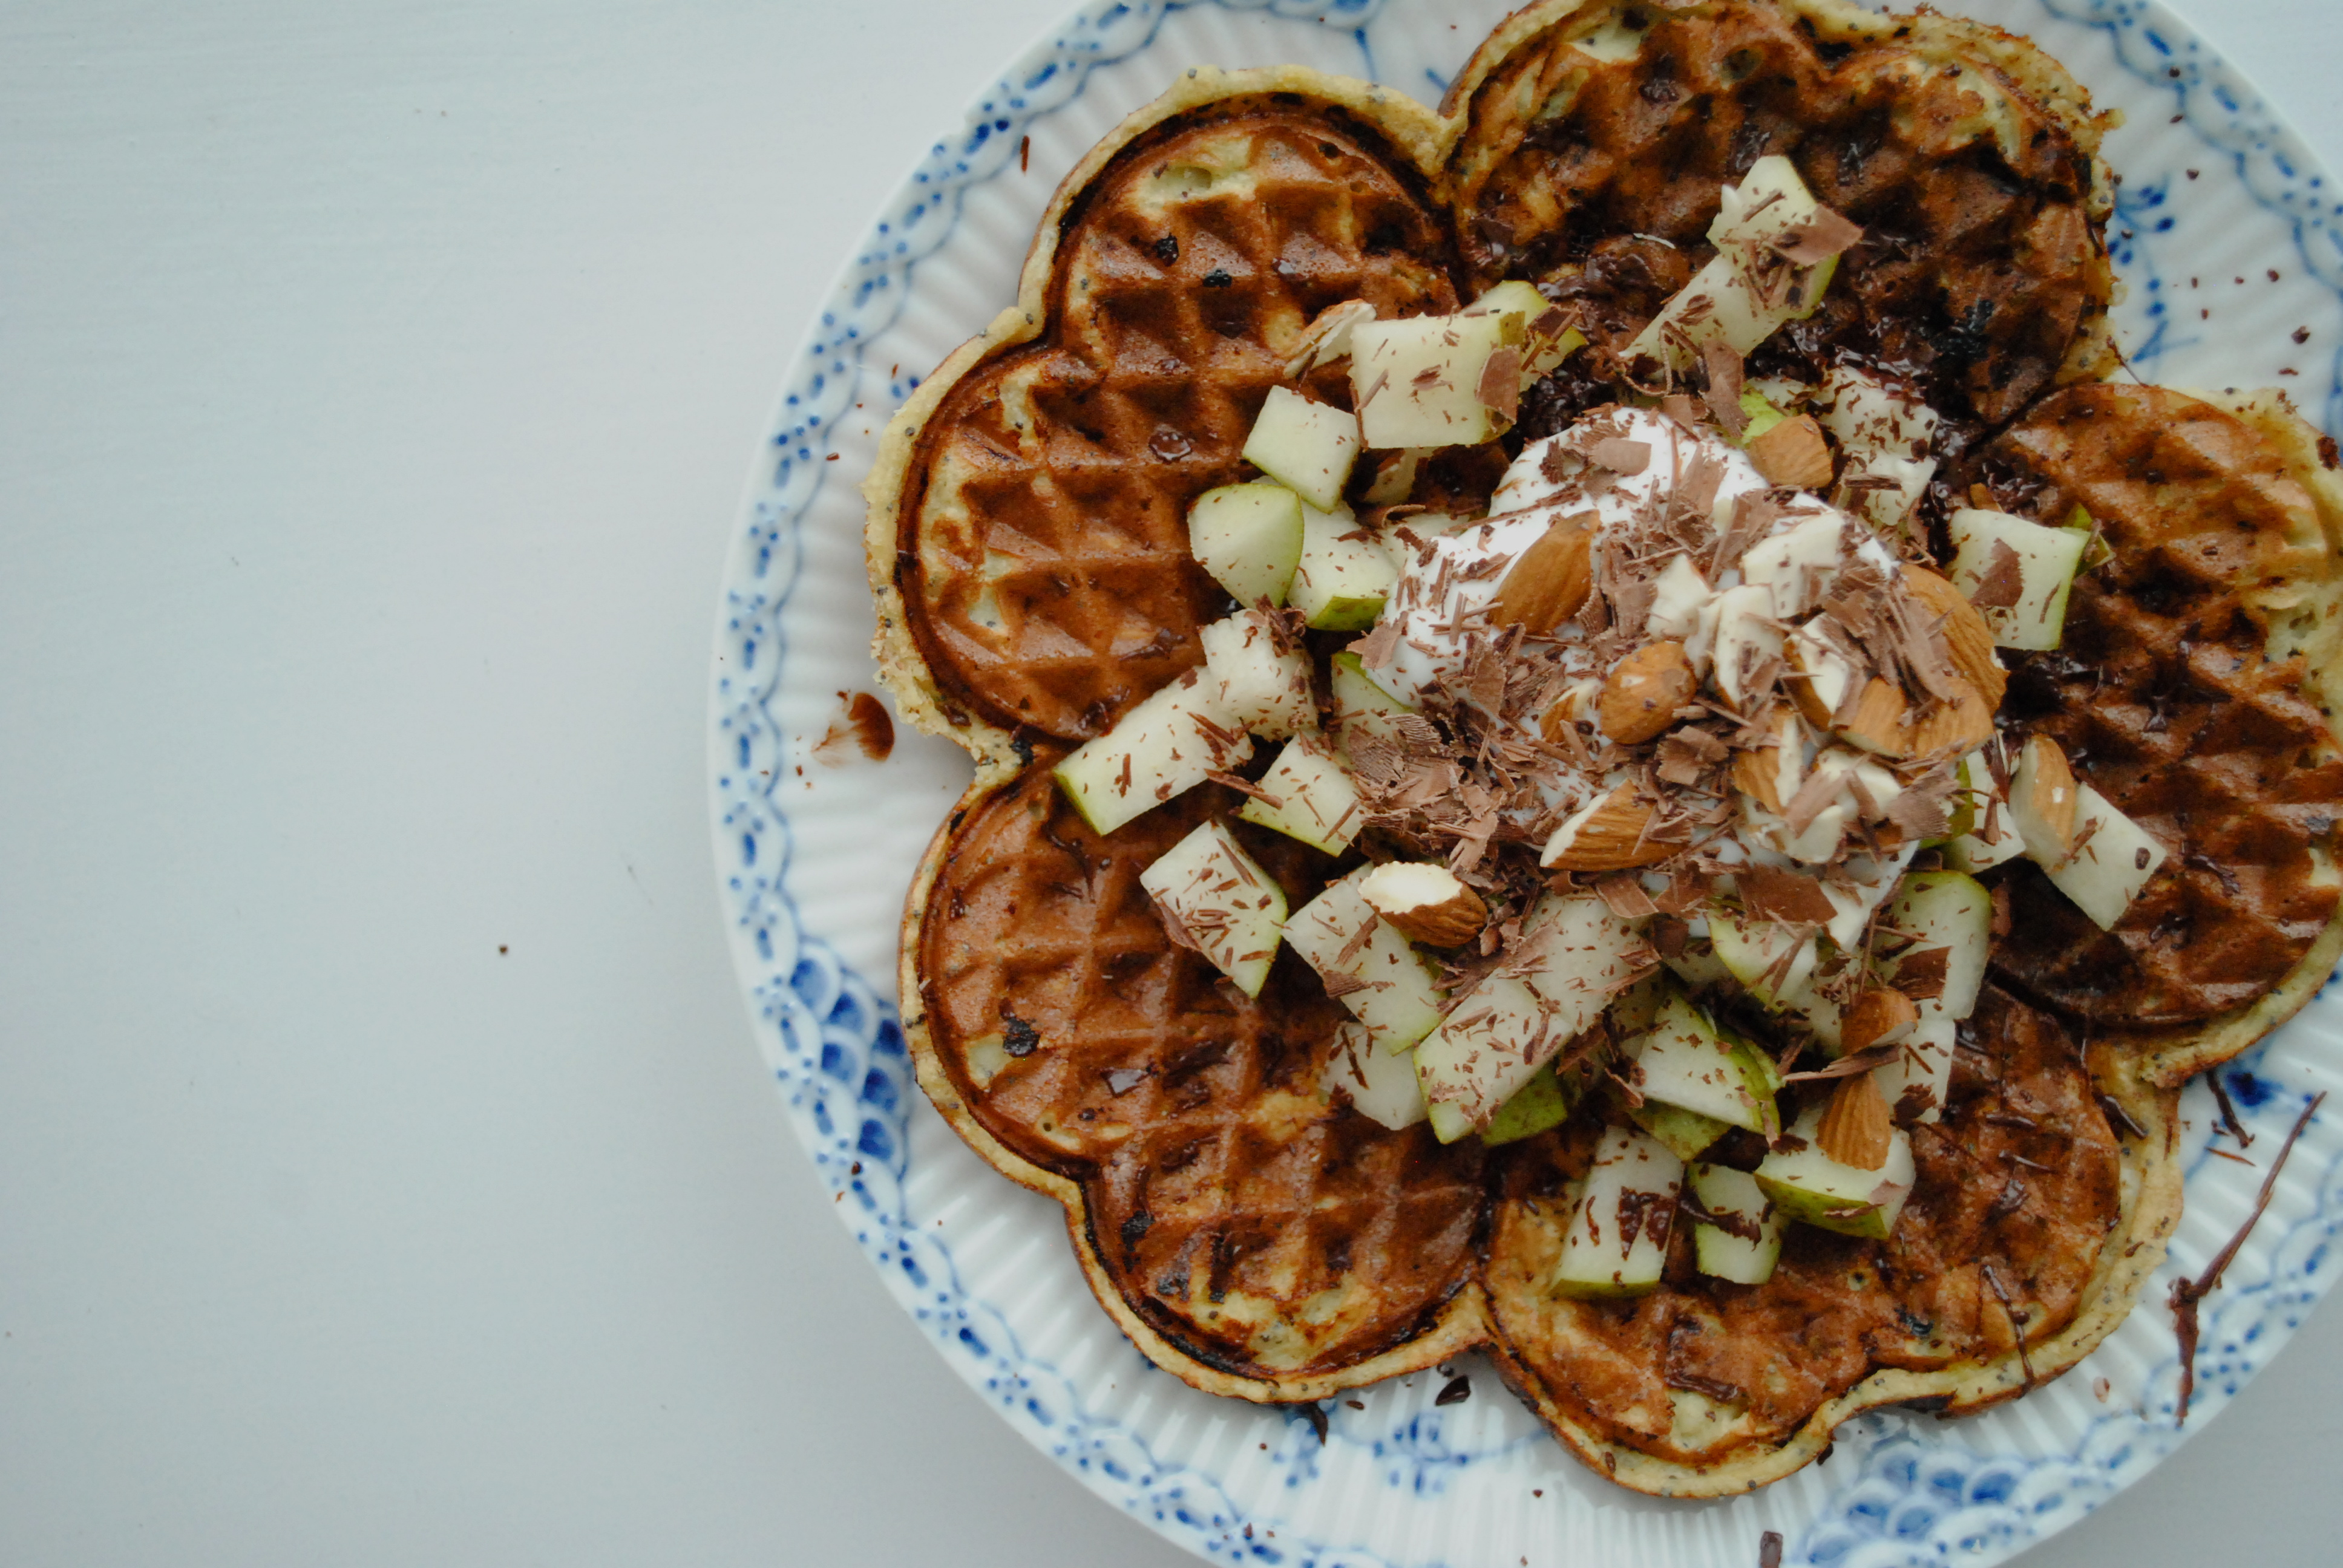 Banana waffles with almond flour